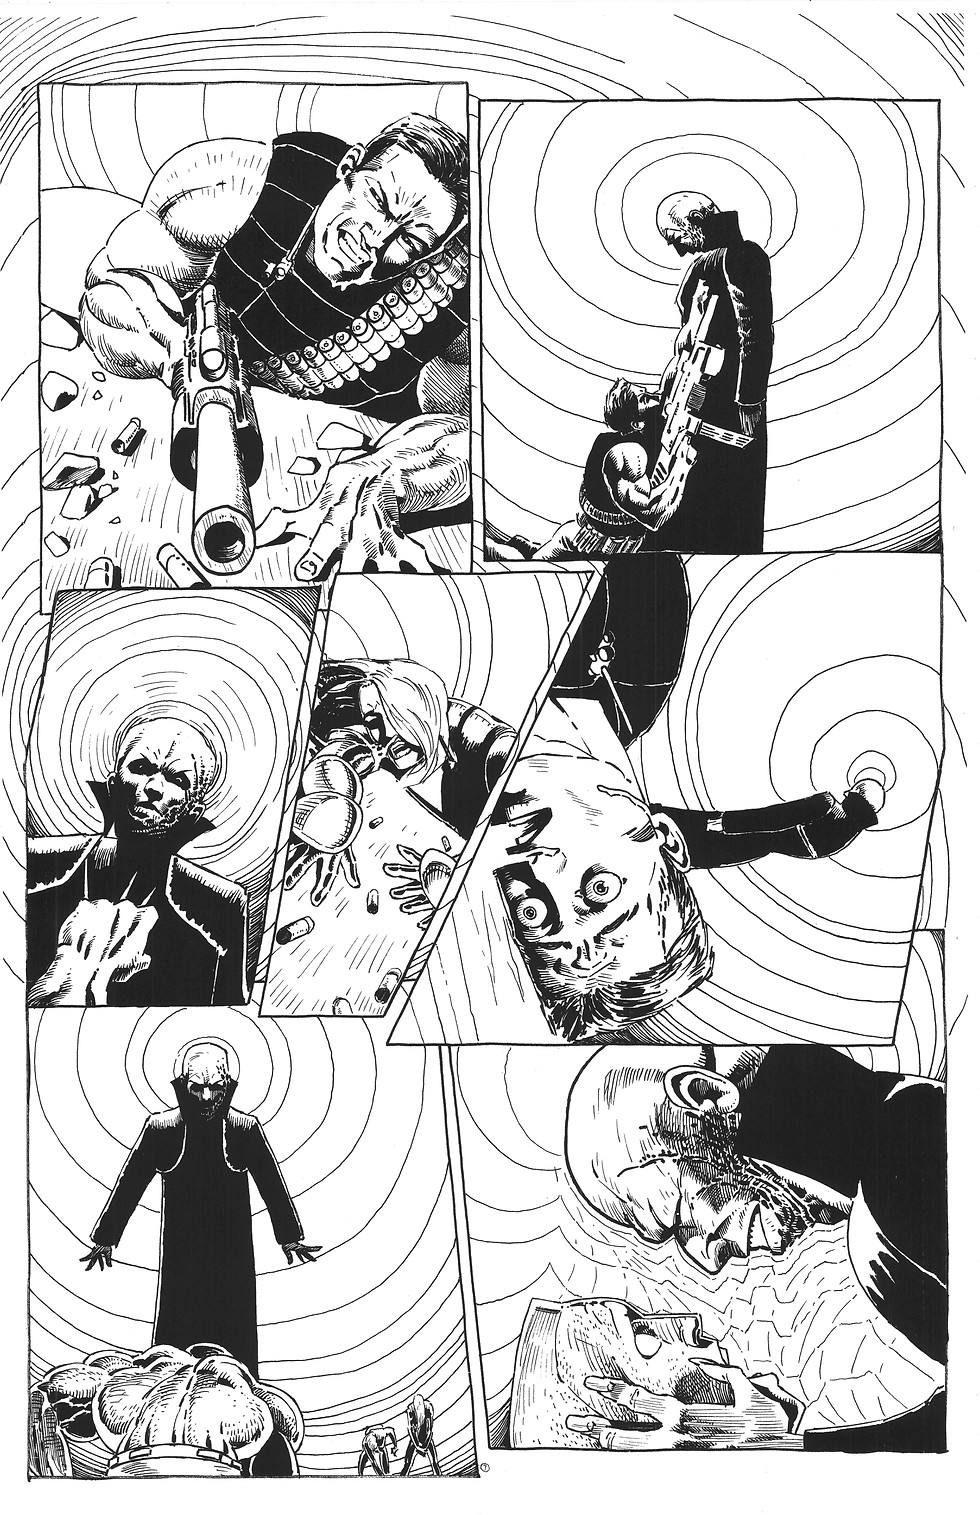 Live Wire Issue 1 (pages 7-14).jpg